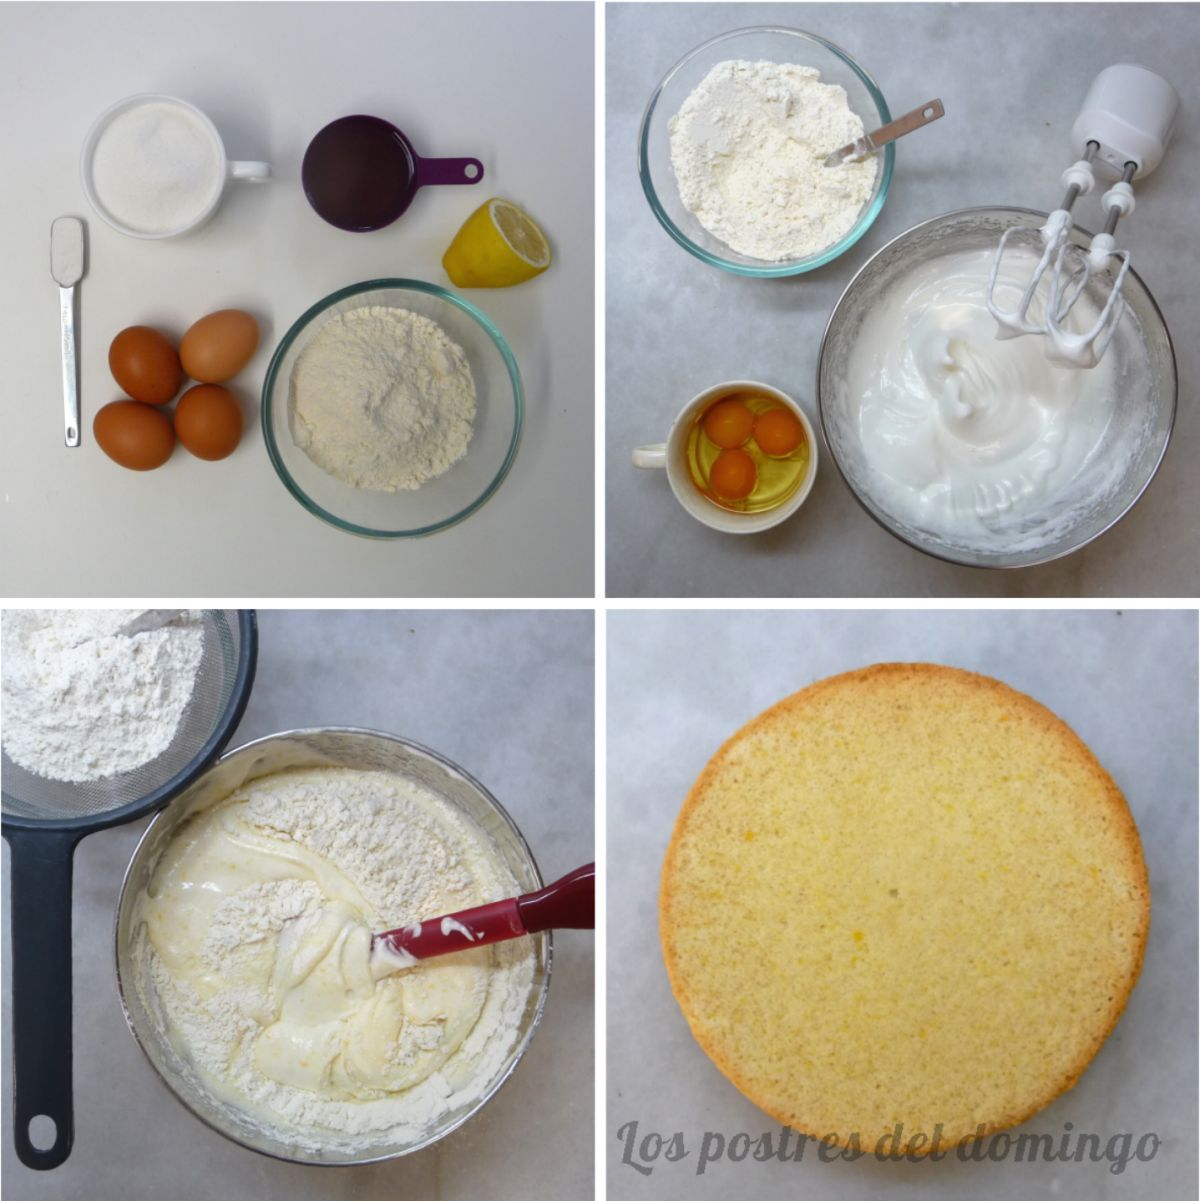 Lemon drizzle cake ingredientes